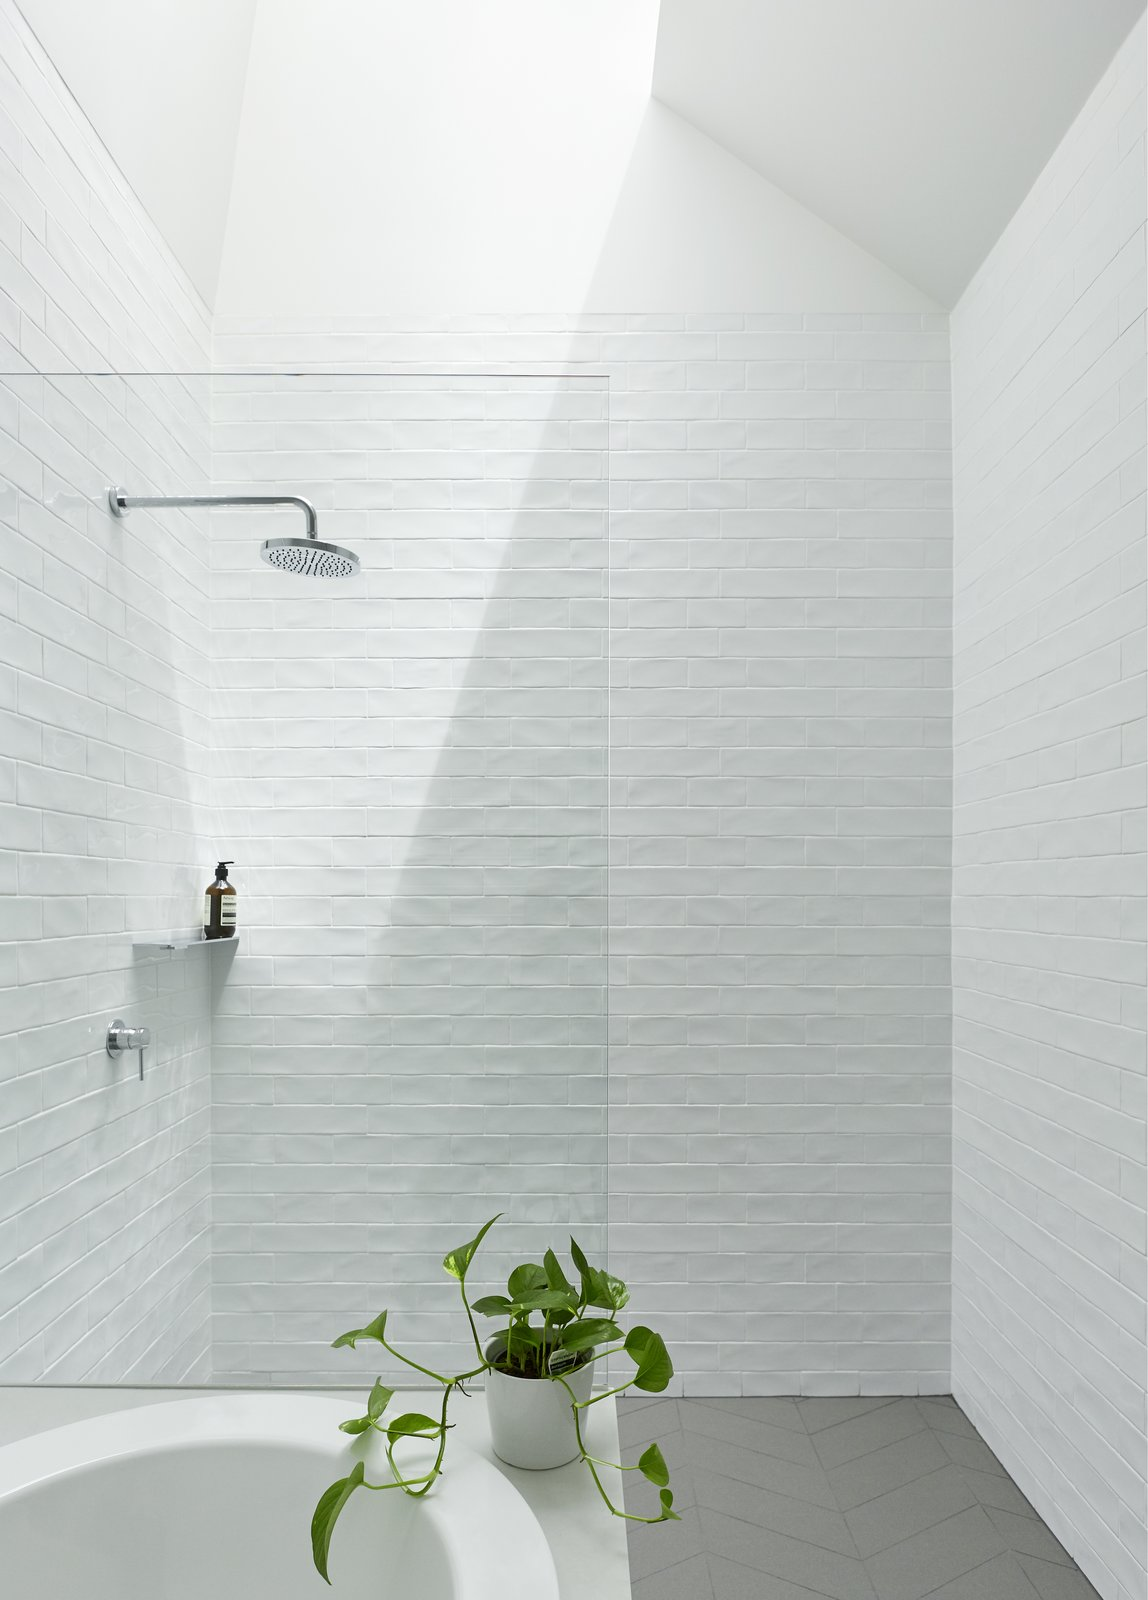 Bath Room, Open Shower, Drop In Tub, and Ceramic Tile Wall The ceramic tiles were created with irregular glaze, which mimics the reflections of the harbor nearby.   Best Photos from A Renovation Sheds New Light on a Cookie-Cutter Home in Sydney